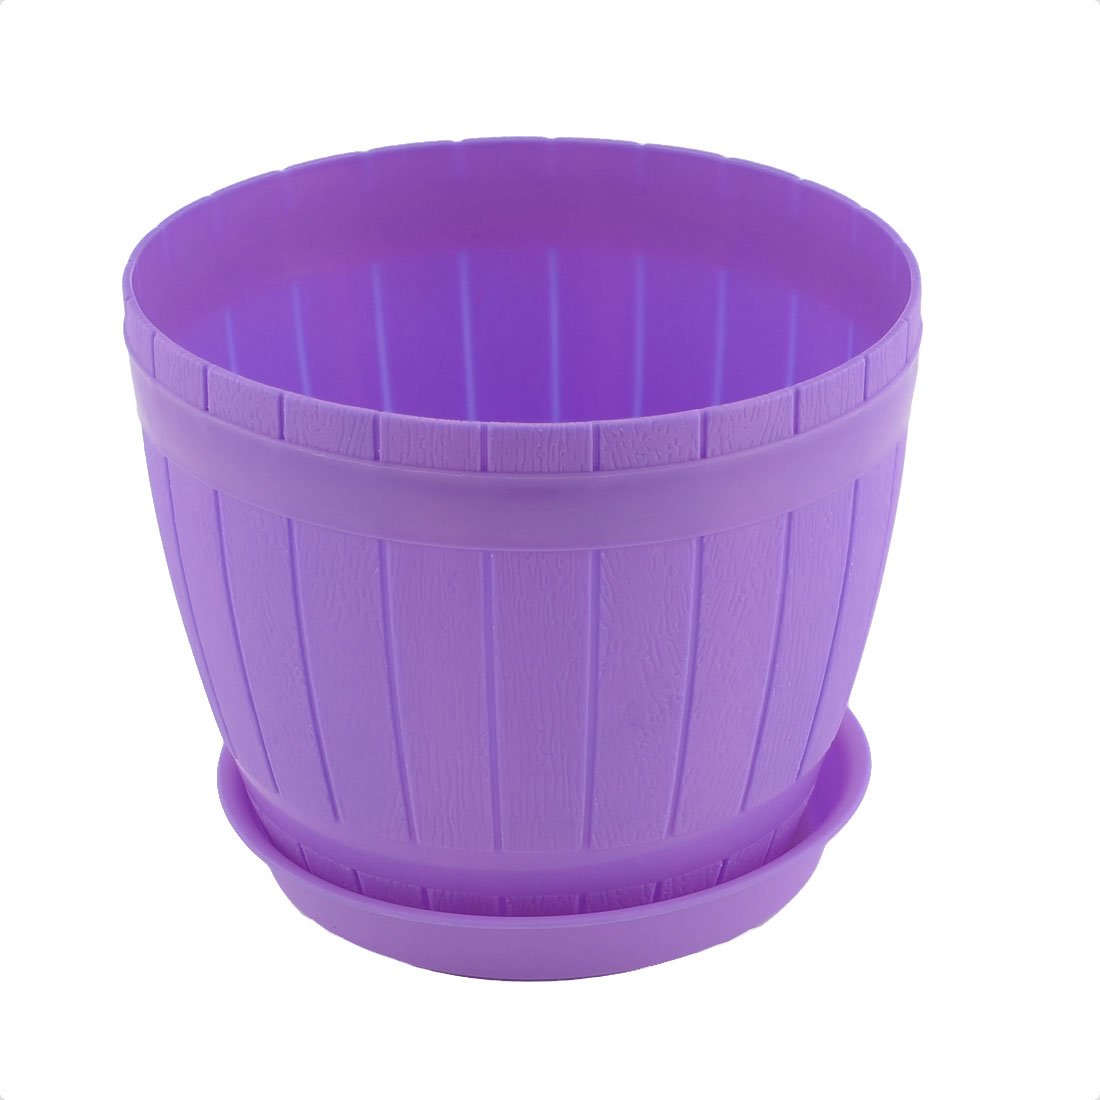 Home Office Desk Decor Plastic Casks Shape Plant Flower Pot Holder Purple w Tray